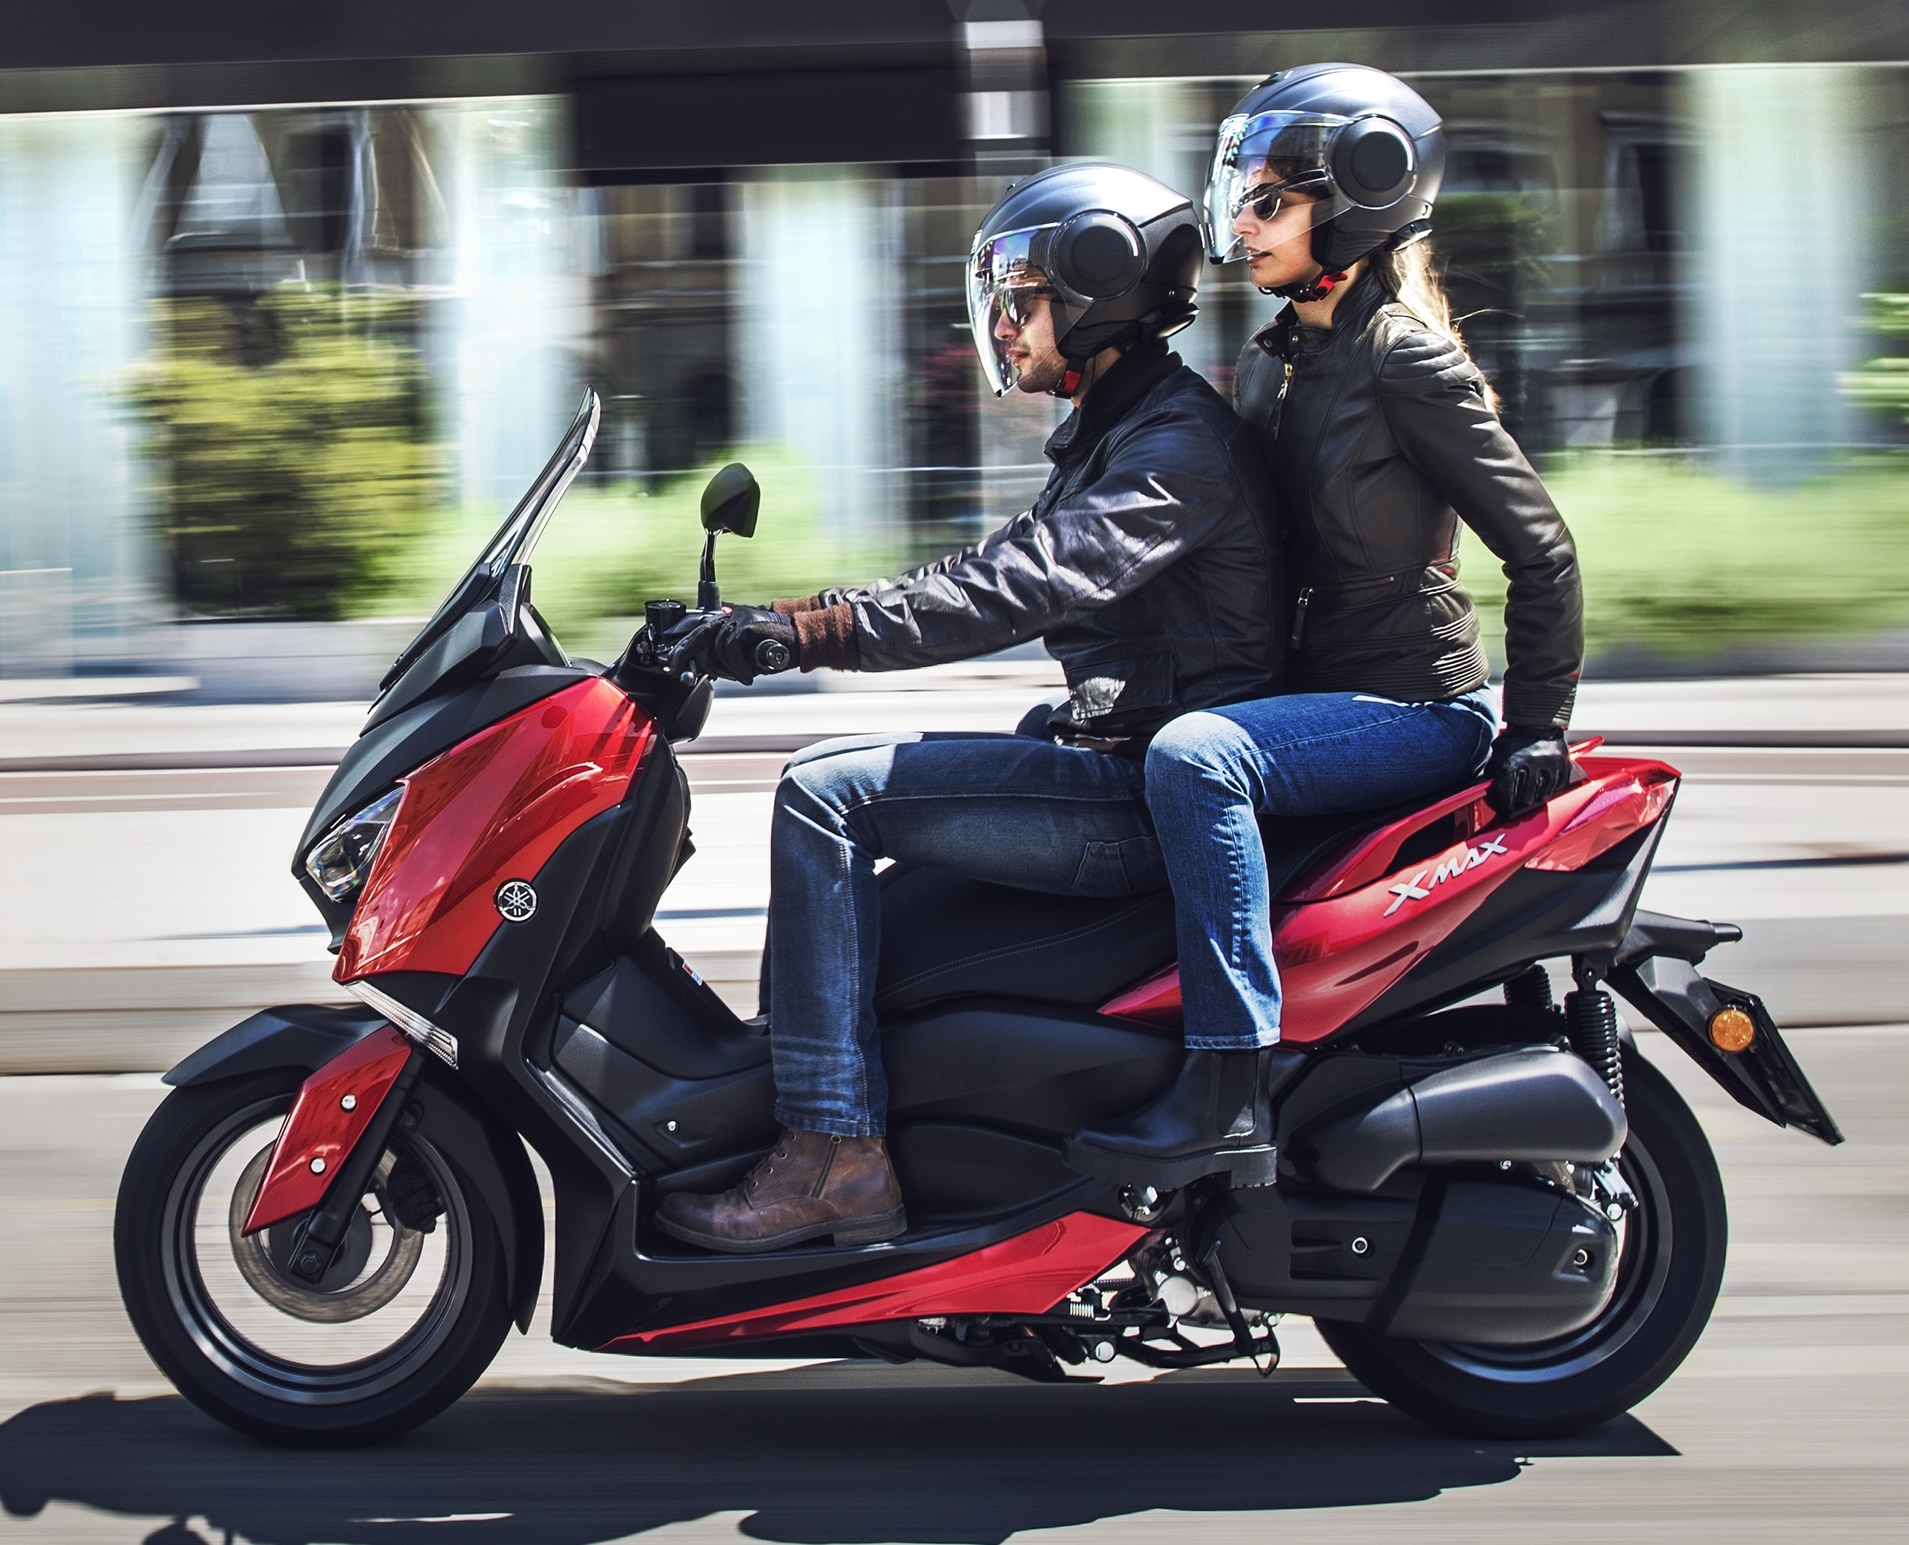 2018 yamaha x max 125 scooter released in europe paul tan. Black Bedroom Furniture Sets. Home Design Ideas